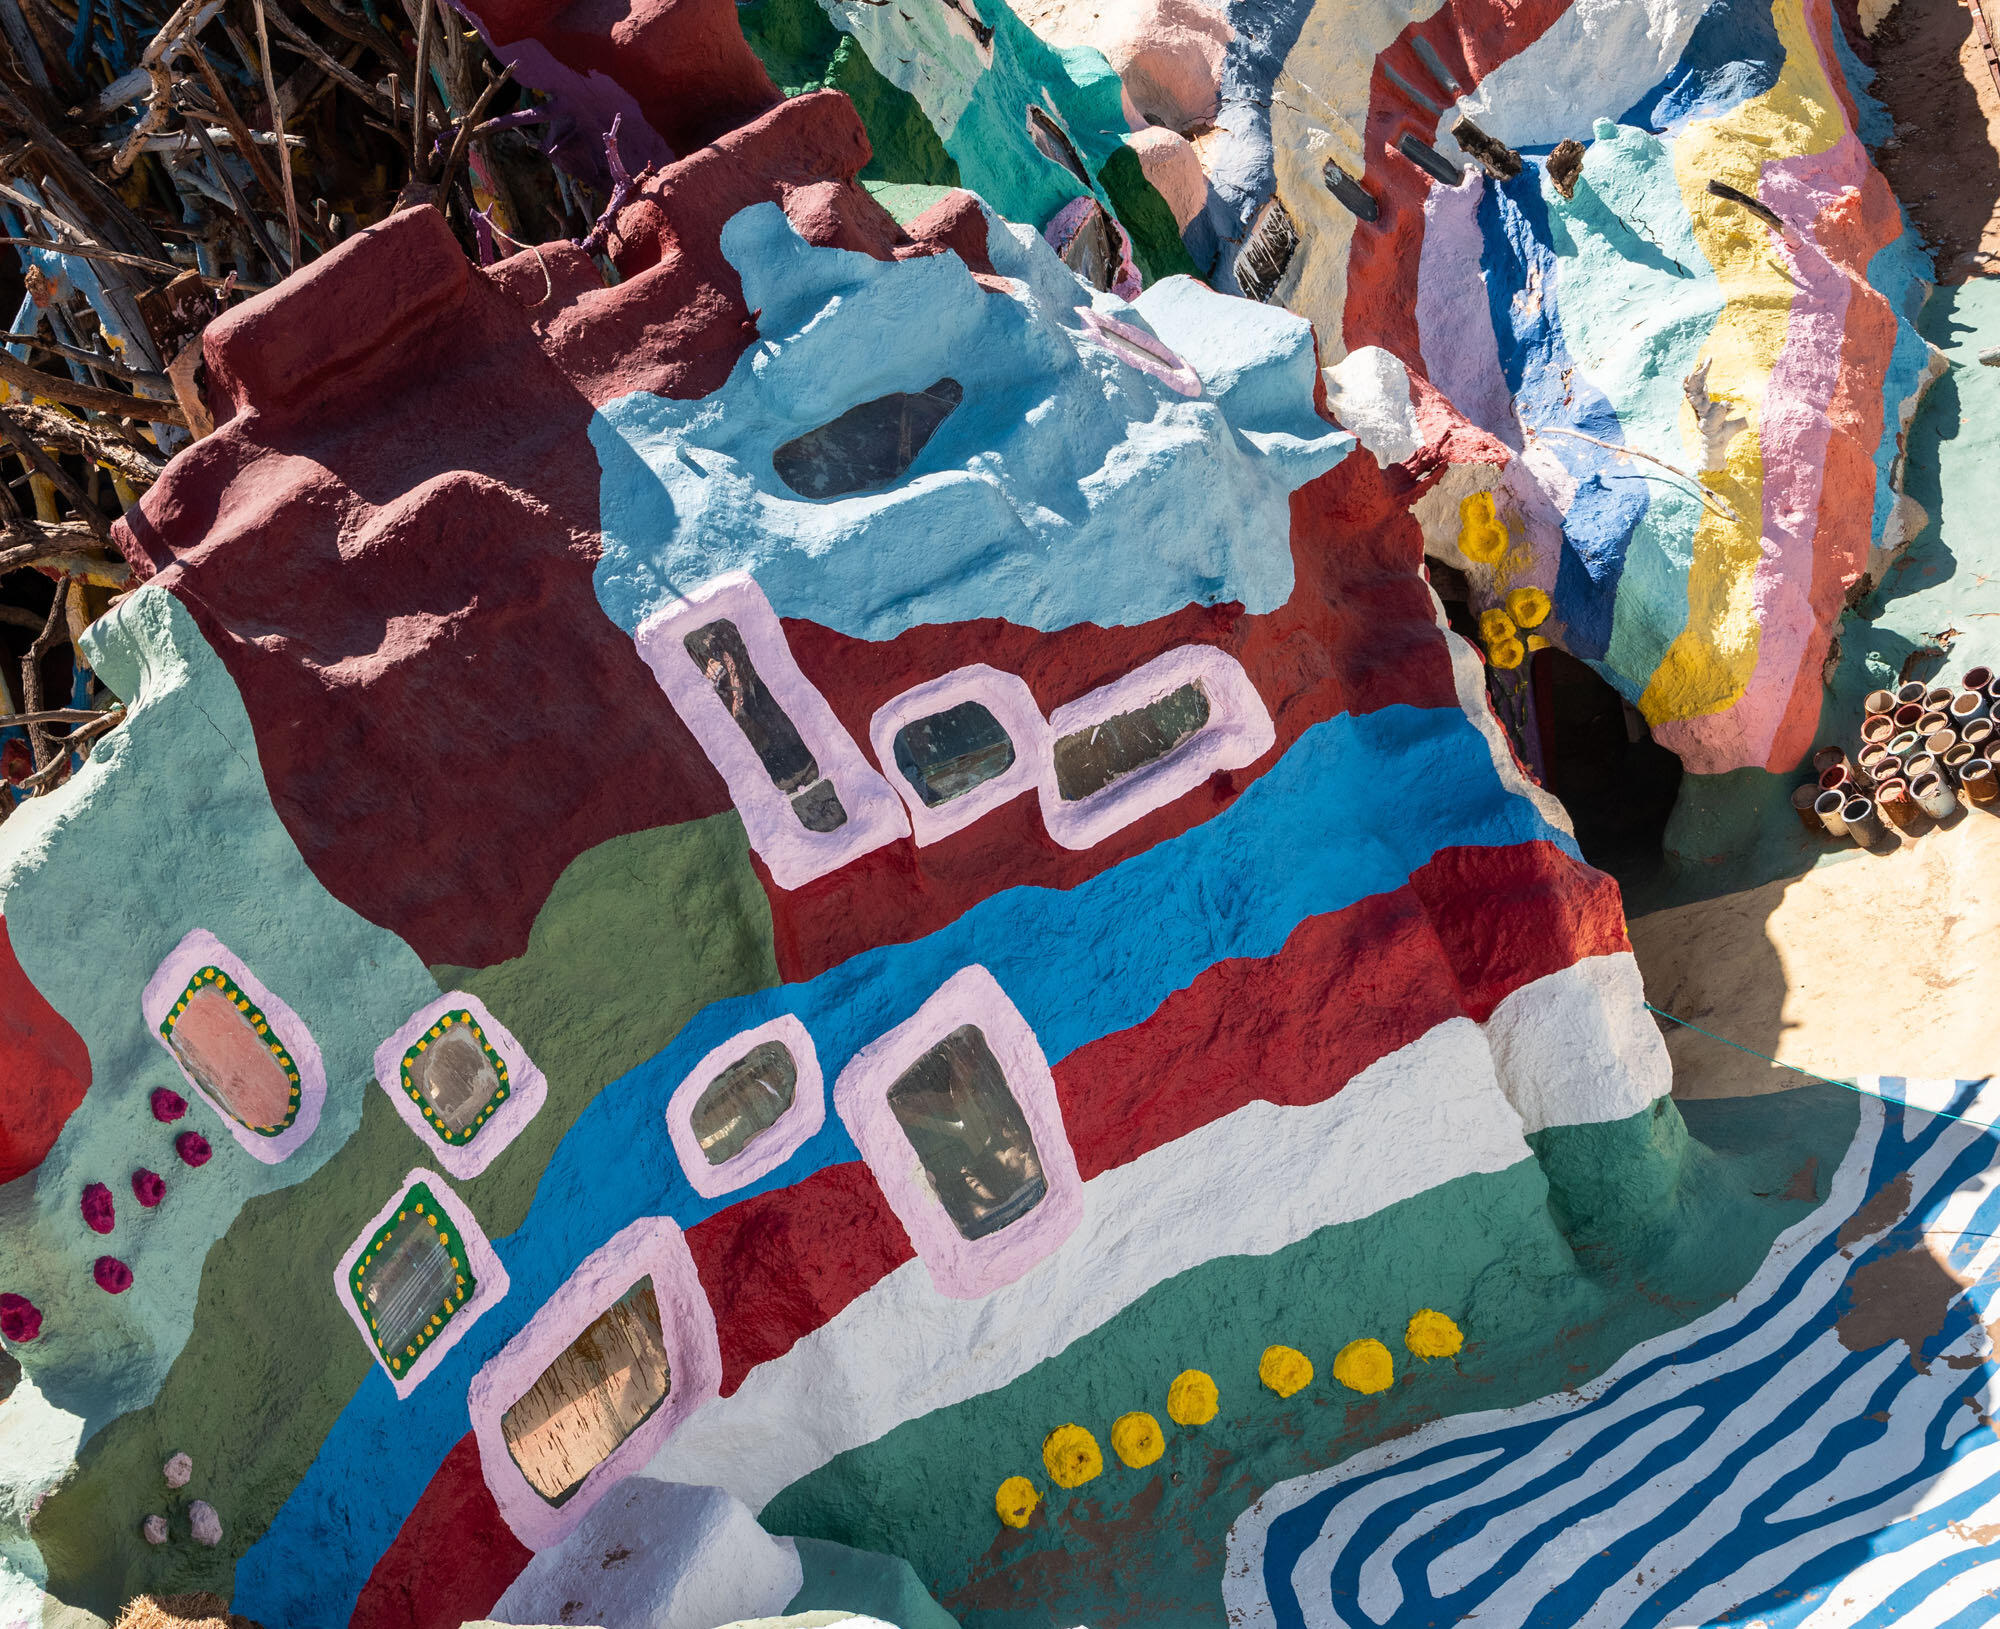 1019_SalvationMountain-1020057.jpg